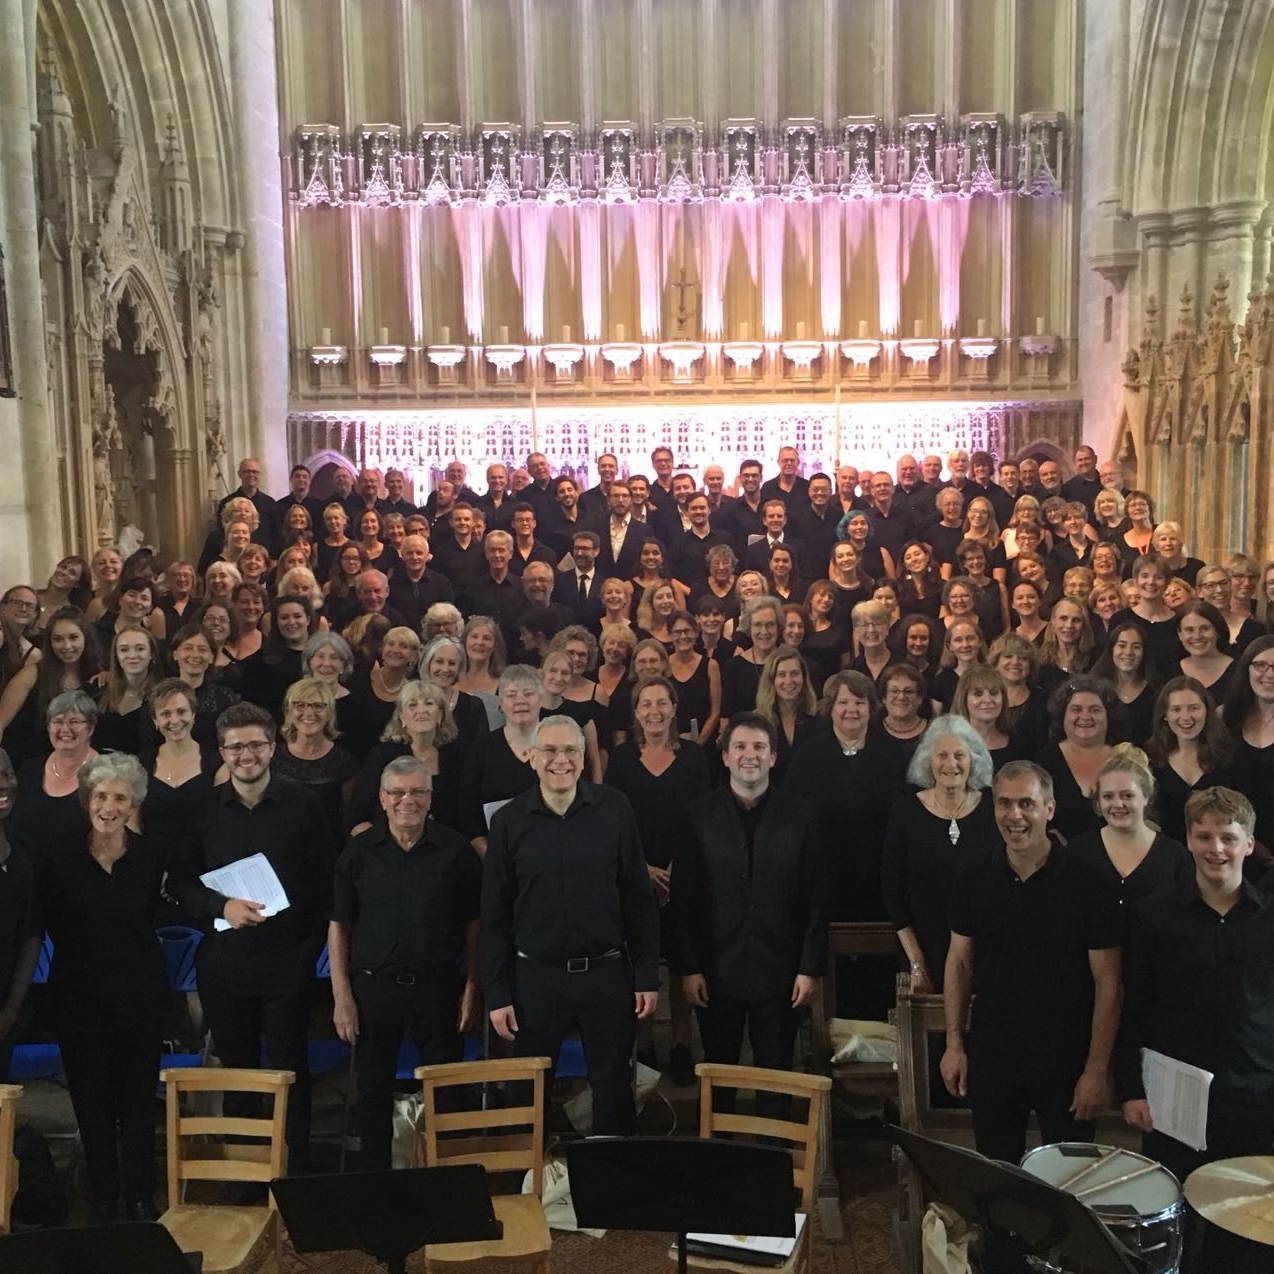 Choral Singers - Singing events and masterclasses with VOCES8 & Apollo5, and every year at the annual VOCES8 Summer School.